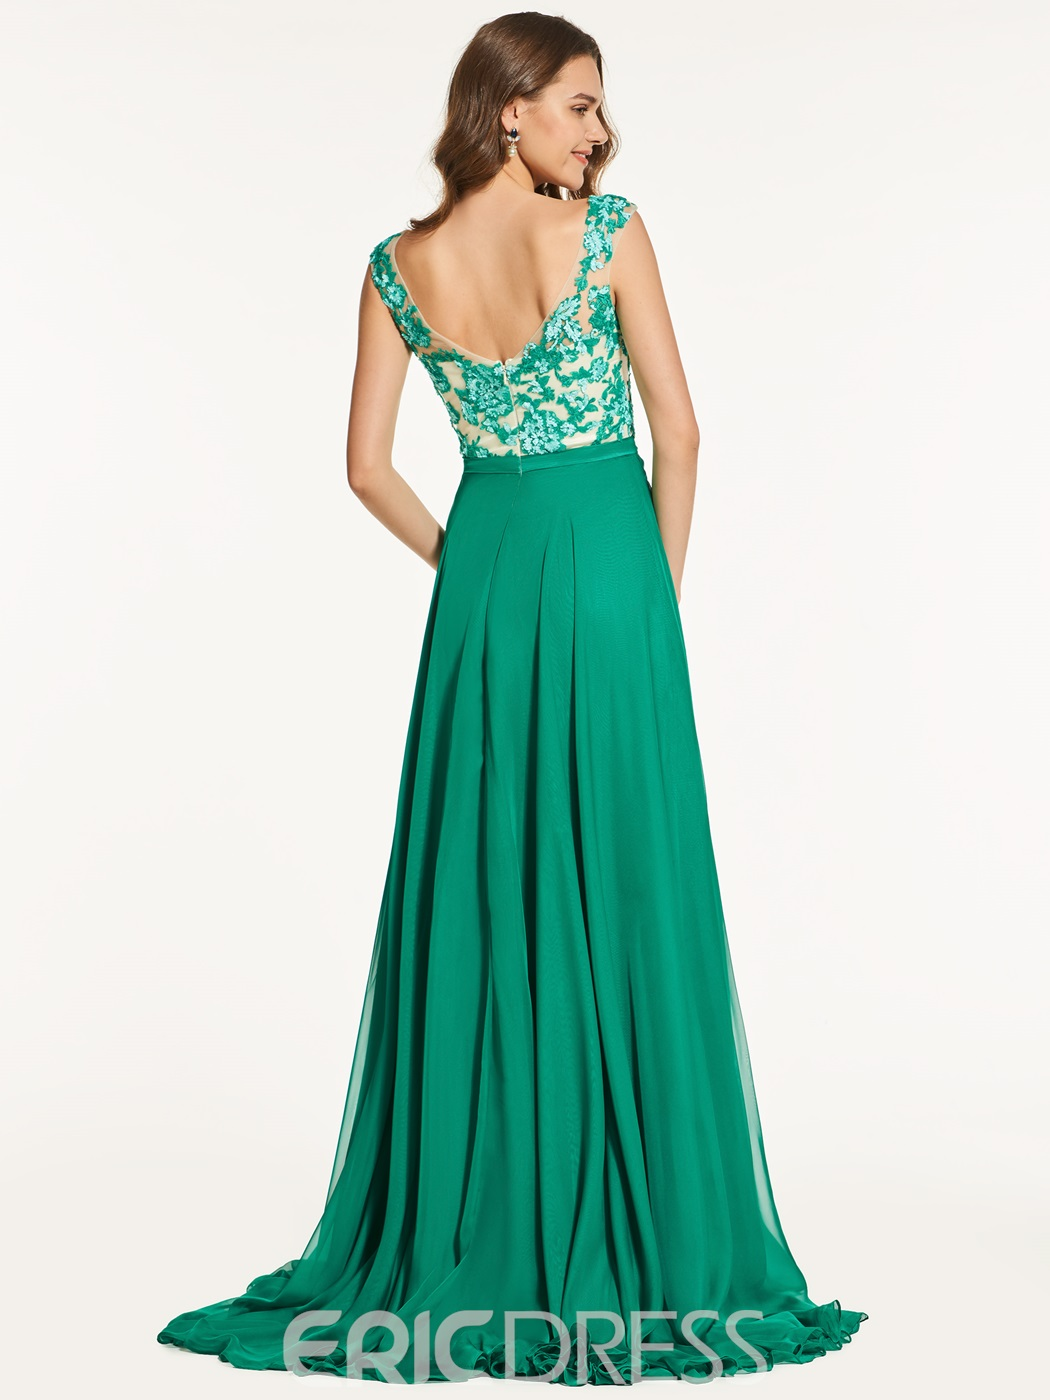 Ericdress A Line Jewel Neck Sequin Applique Long Prom Dress